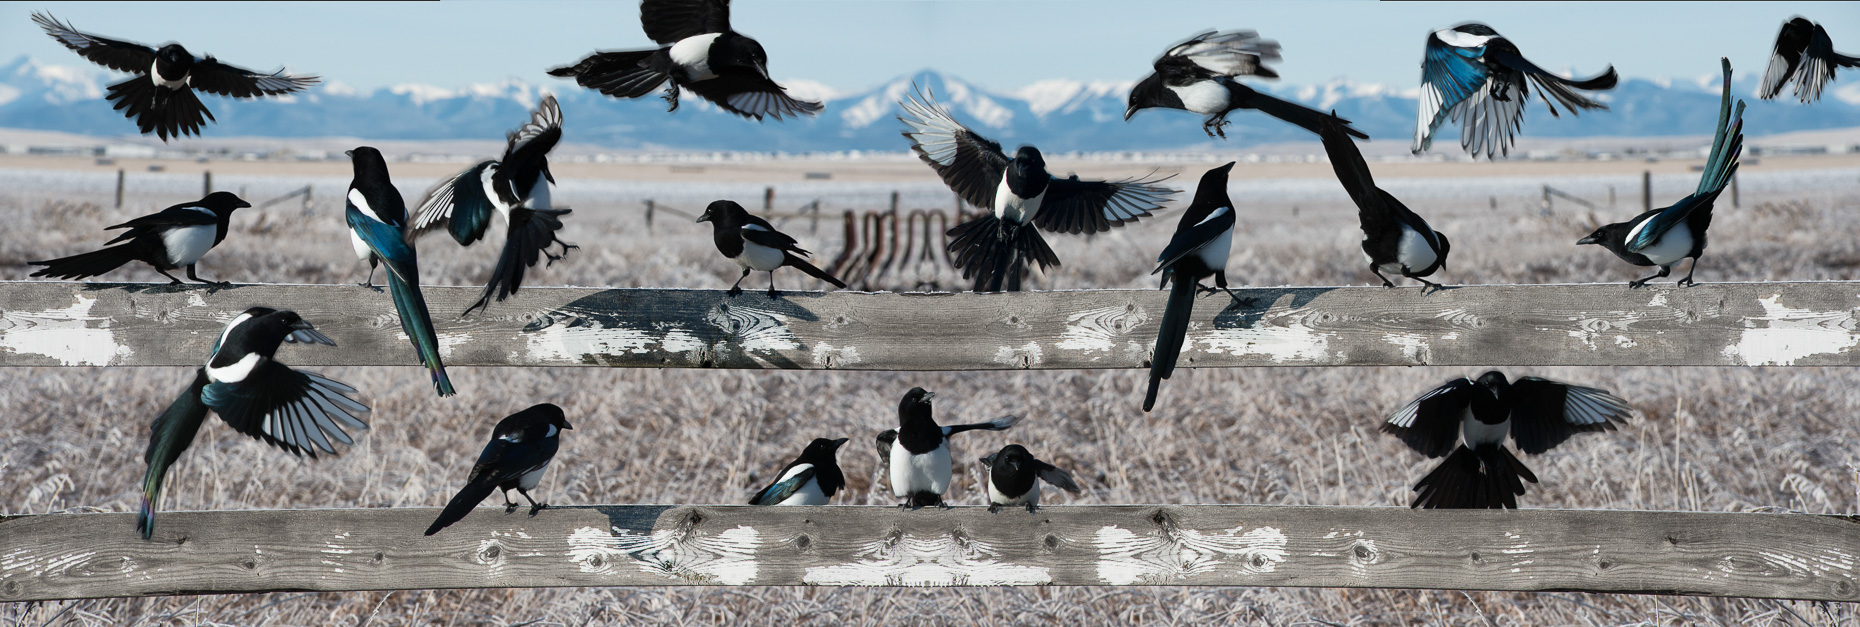 Magpies wither prairies Travel Albert Explore Canada Sun Peaks Photography